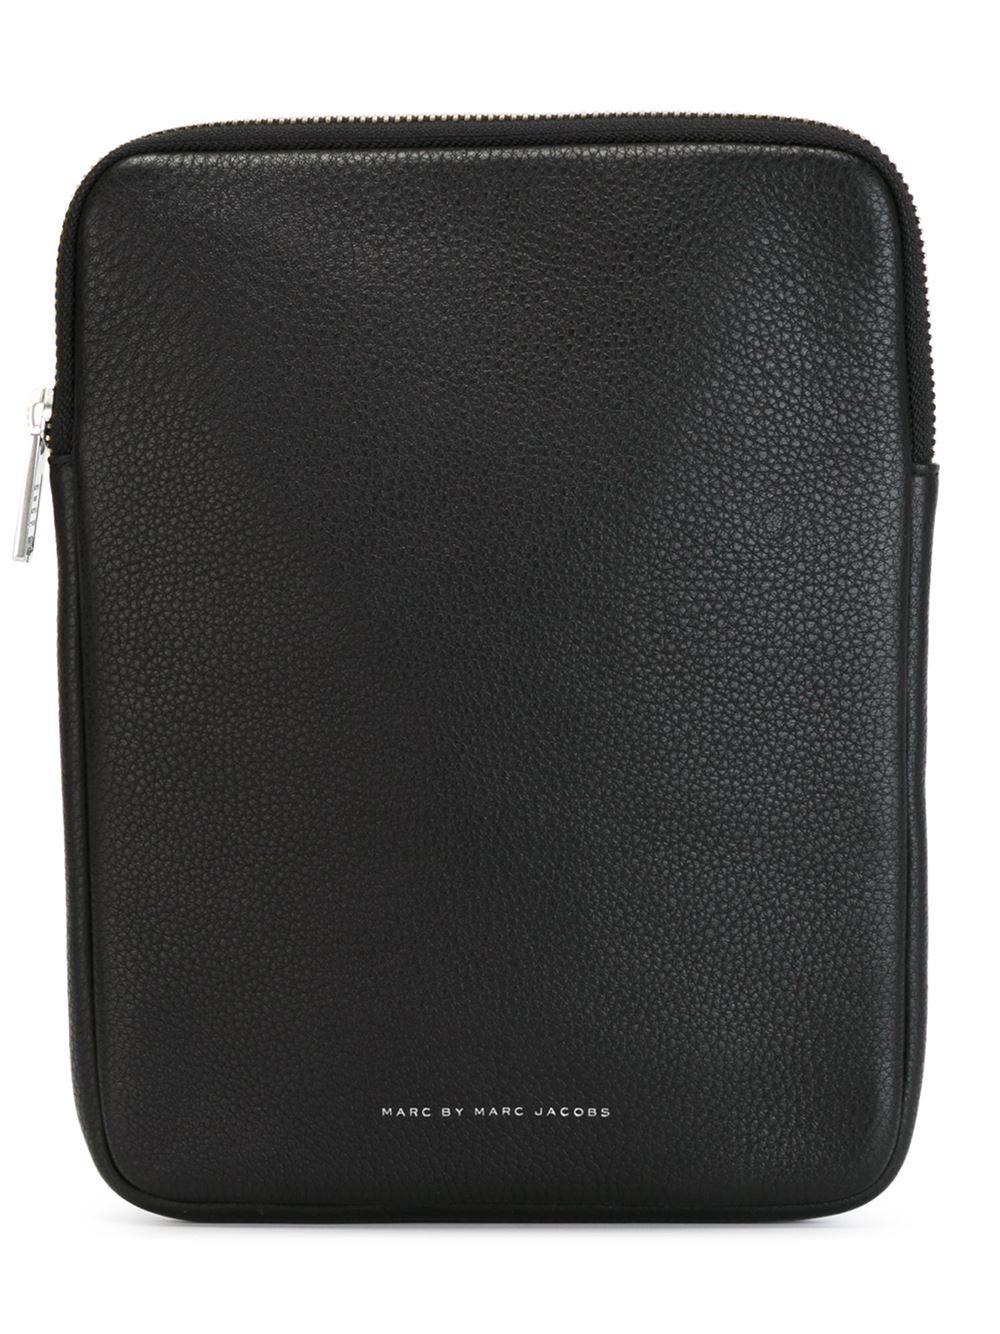 Lyst - Marc By Marc Jacobs Ipad Air 2 Zipped Case in Black